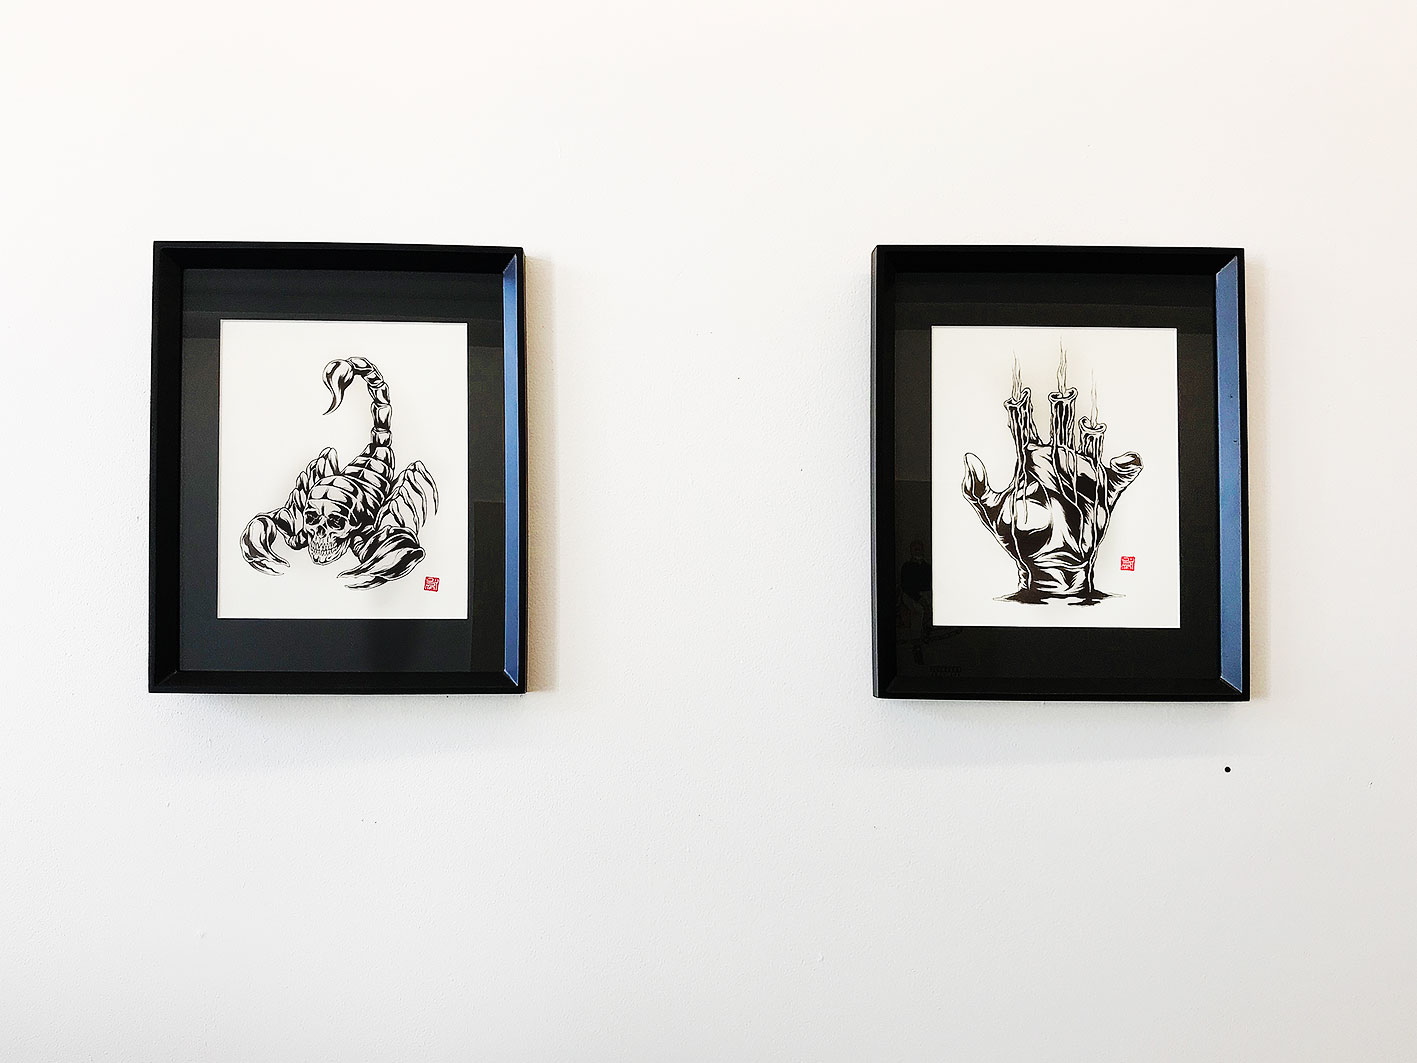 James Jirat Partradoon - (left to right) (1) Heavy Duty In The Mirror 2018 Ballpoint on paper 305 x 380 mm framed (2) Burning Shadow 2018 Ballpoint on paper 305 x 380 mm framed